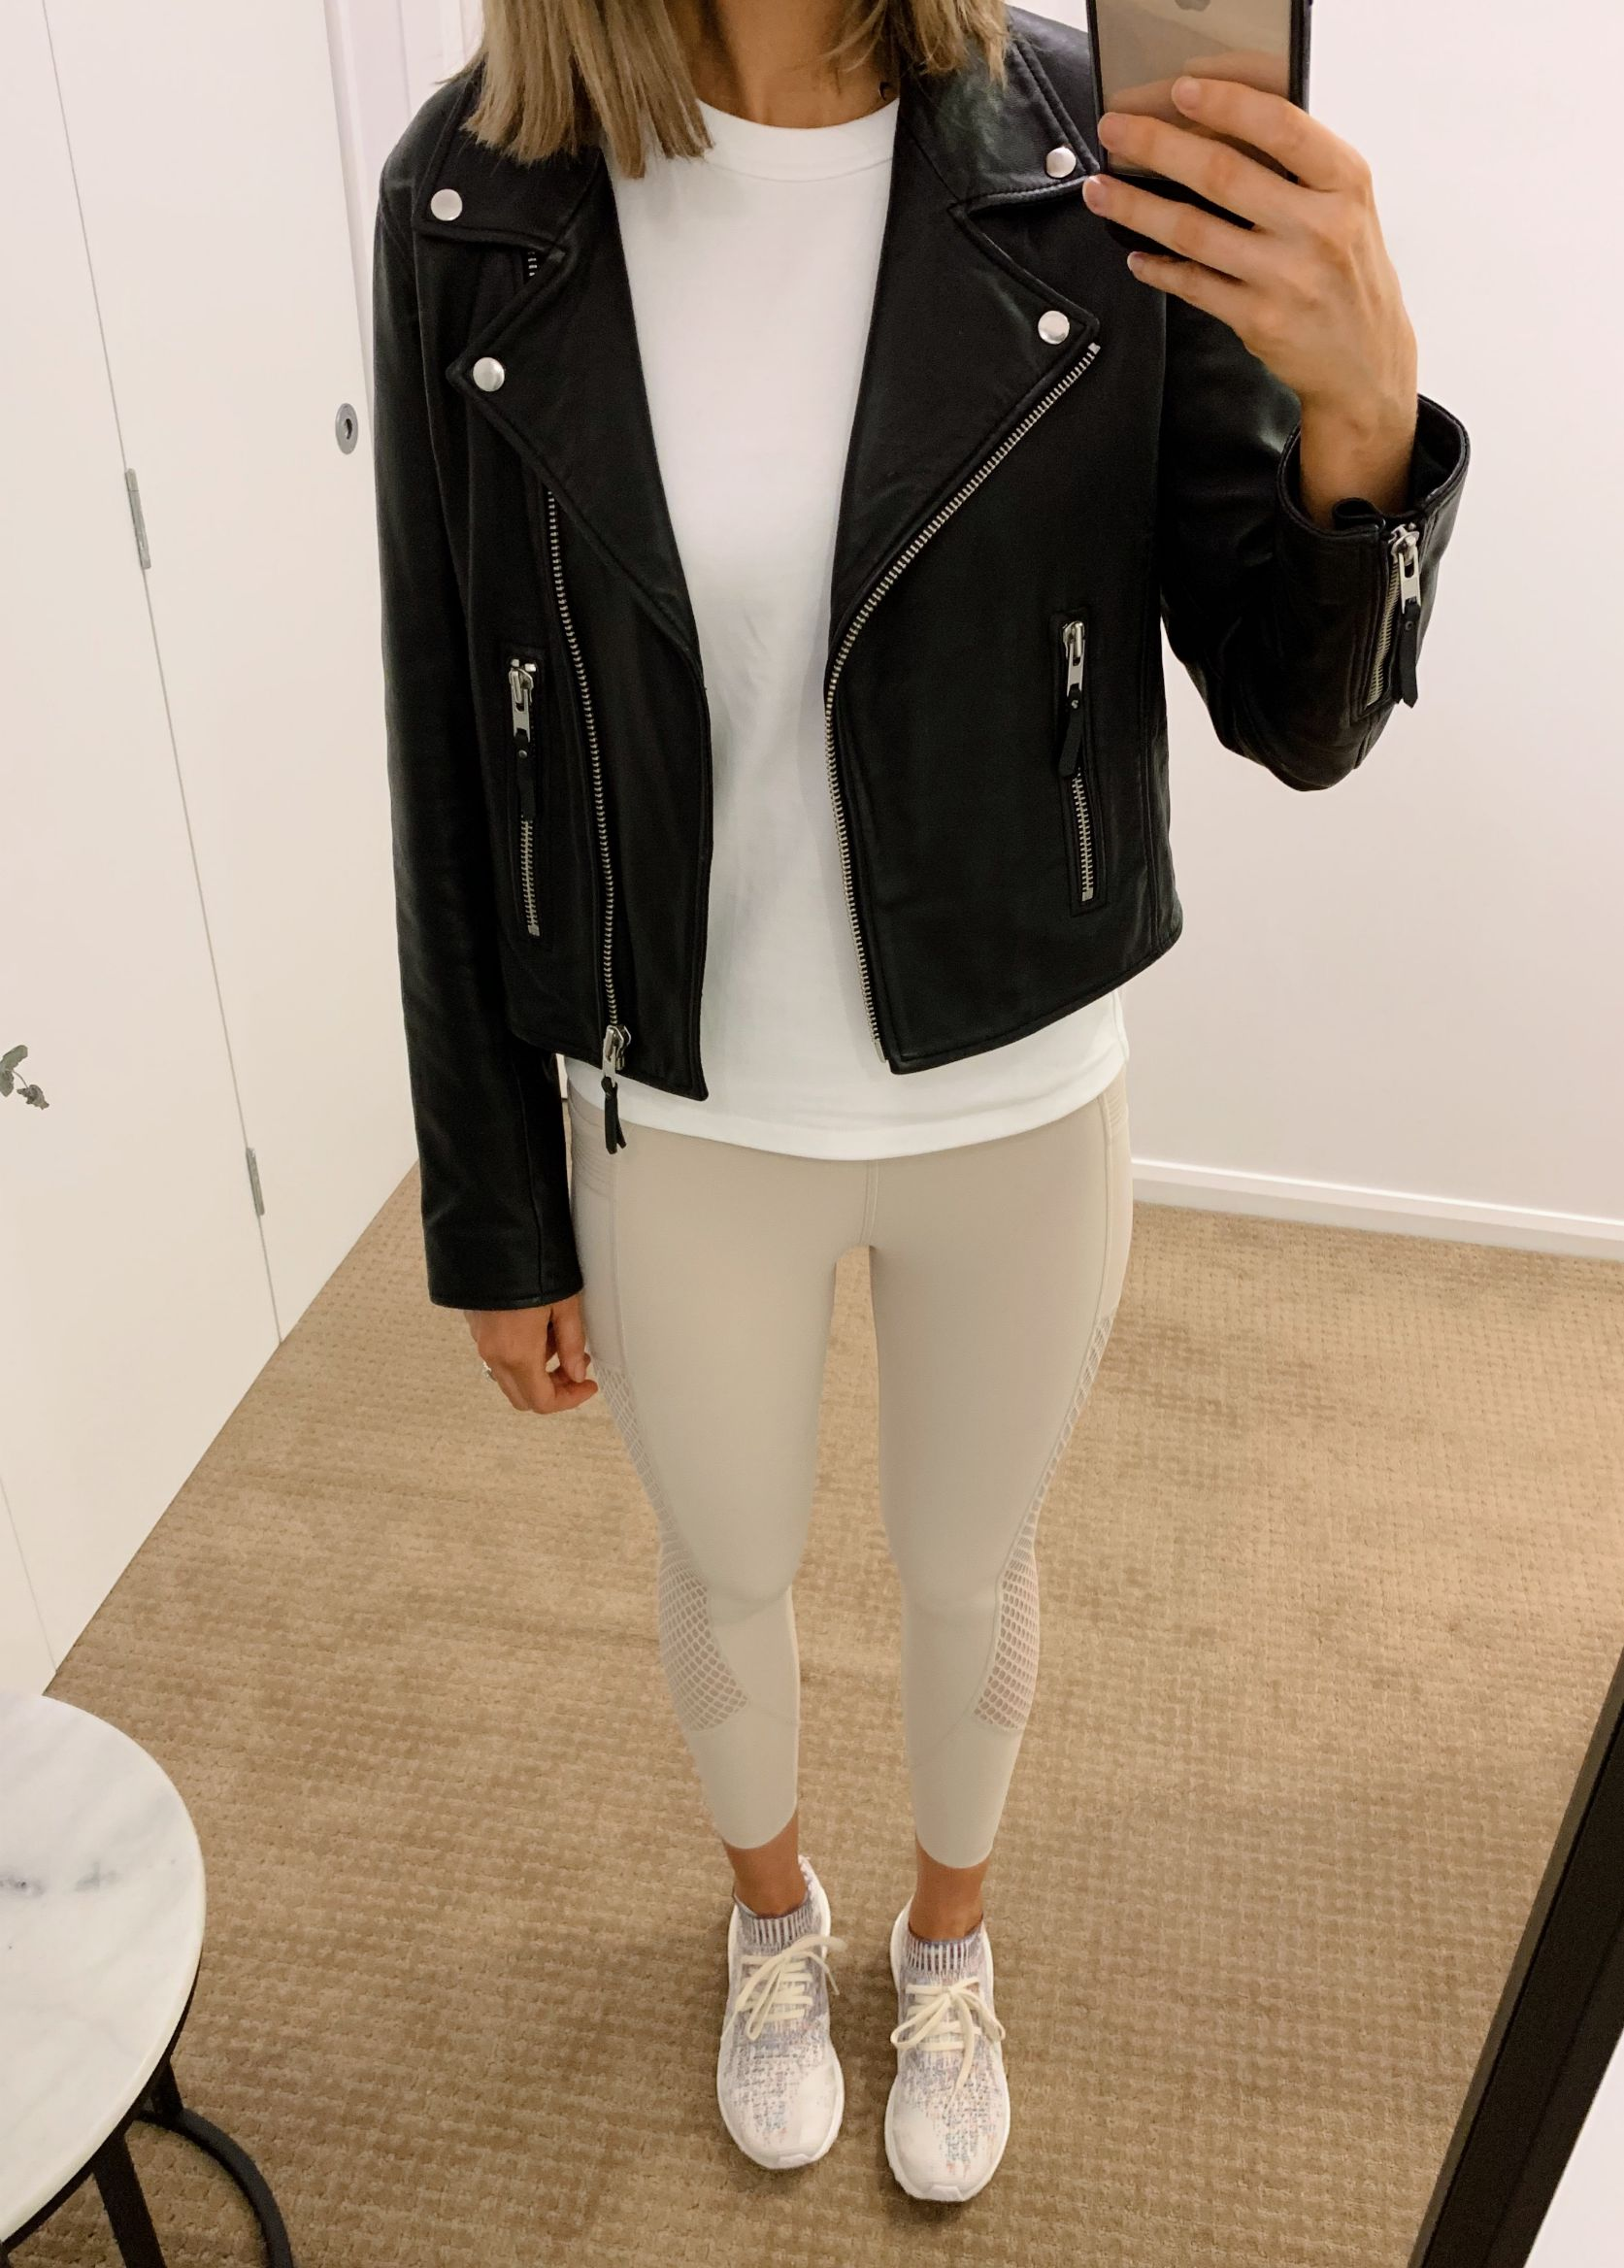 athleisure outfit ideas pinterest fashion blogger style neutral athletic wear workout everyday outfits errands black leather biker jacket white tee and leggings 4